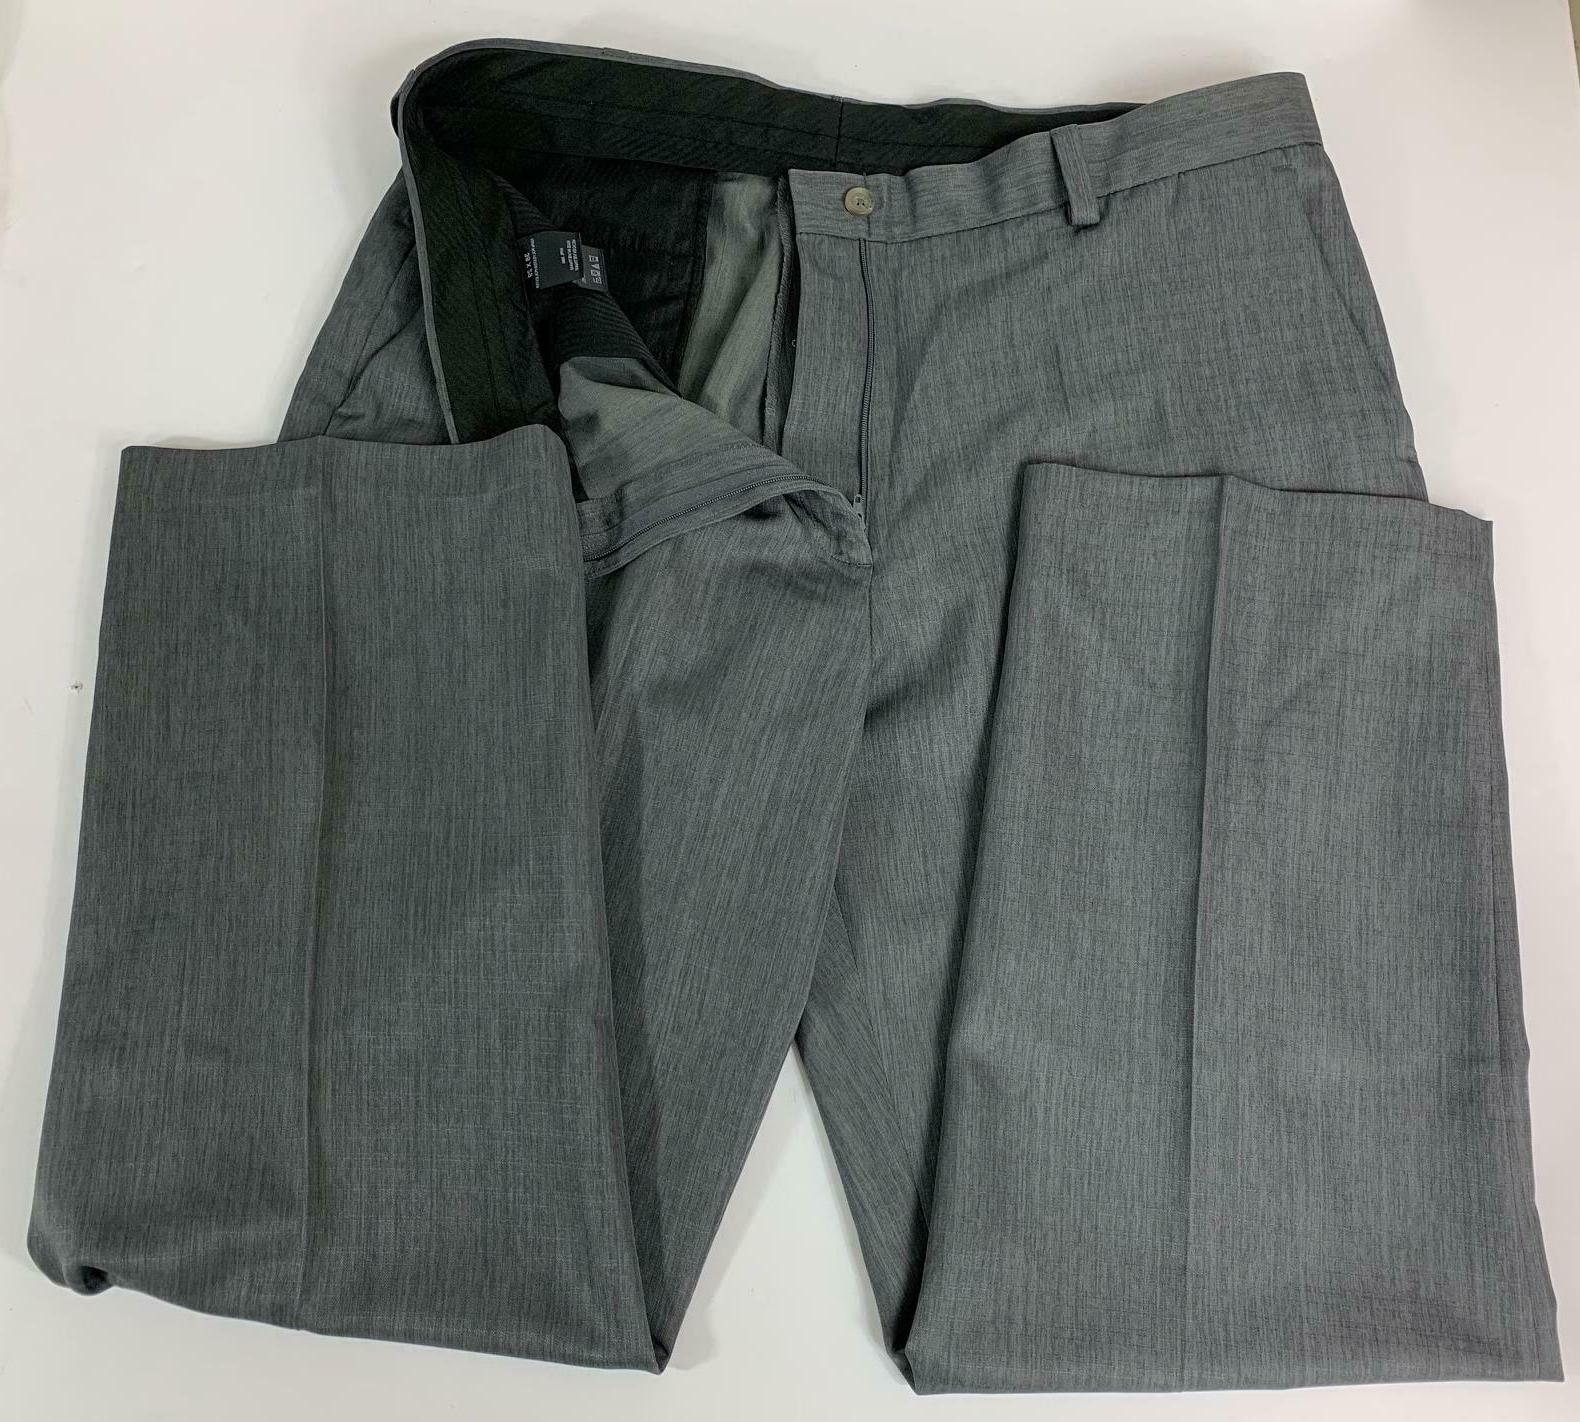 Haggar Men's Plain Front Dress Grey 38 29 New with